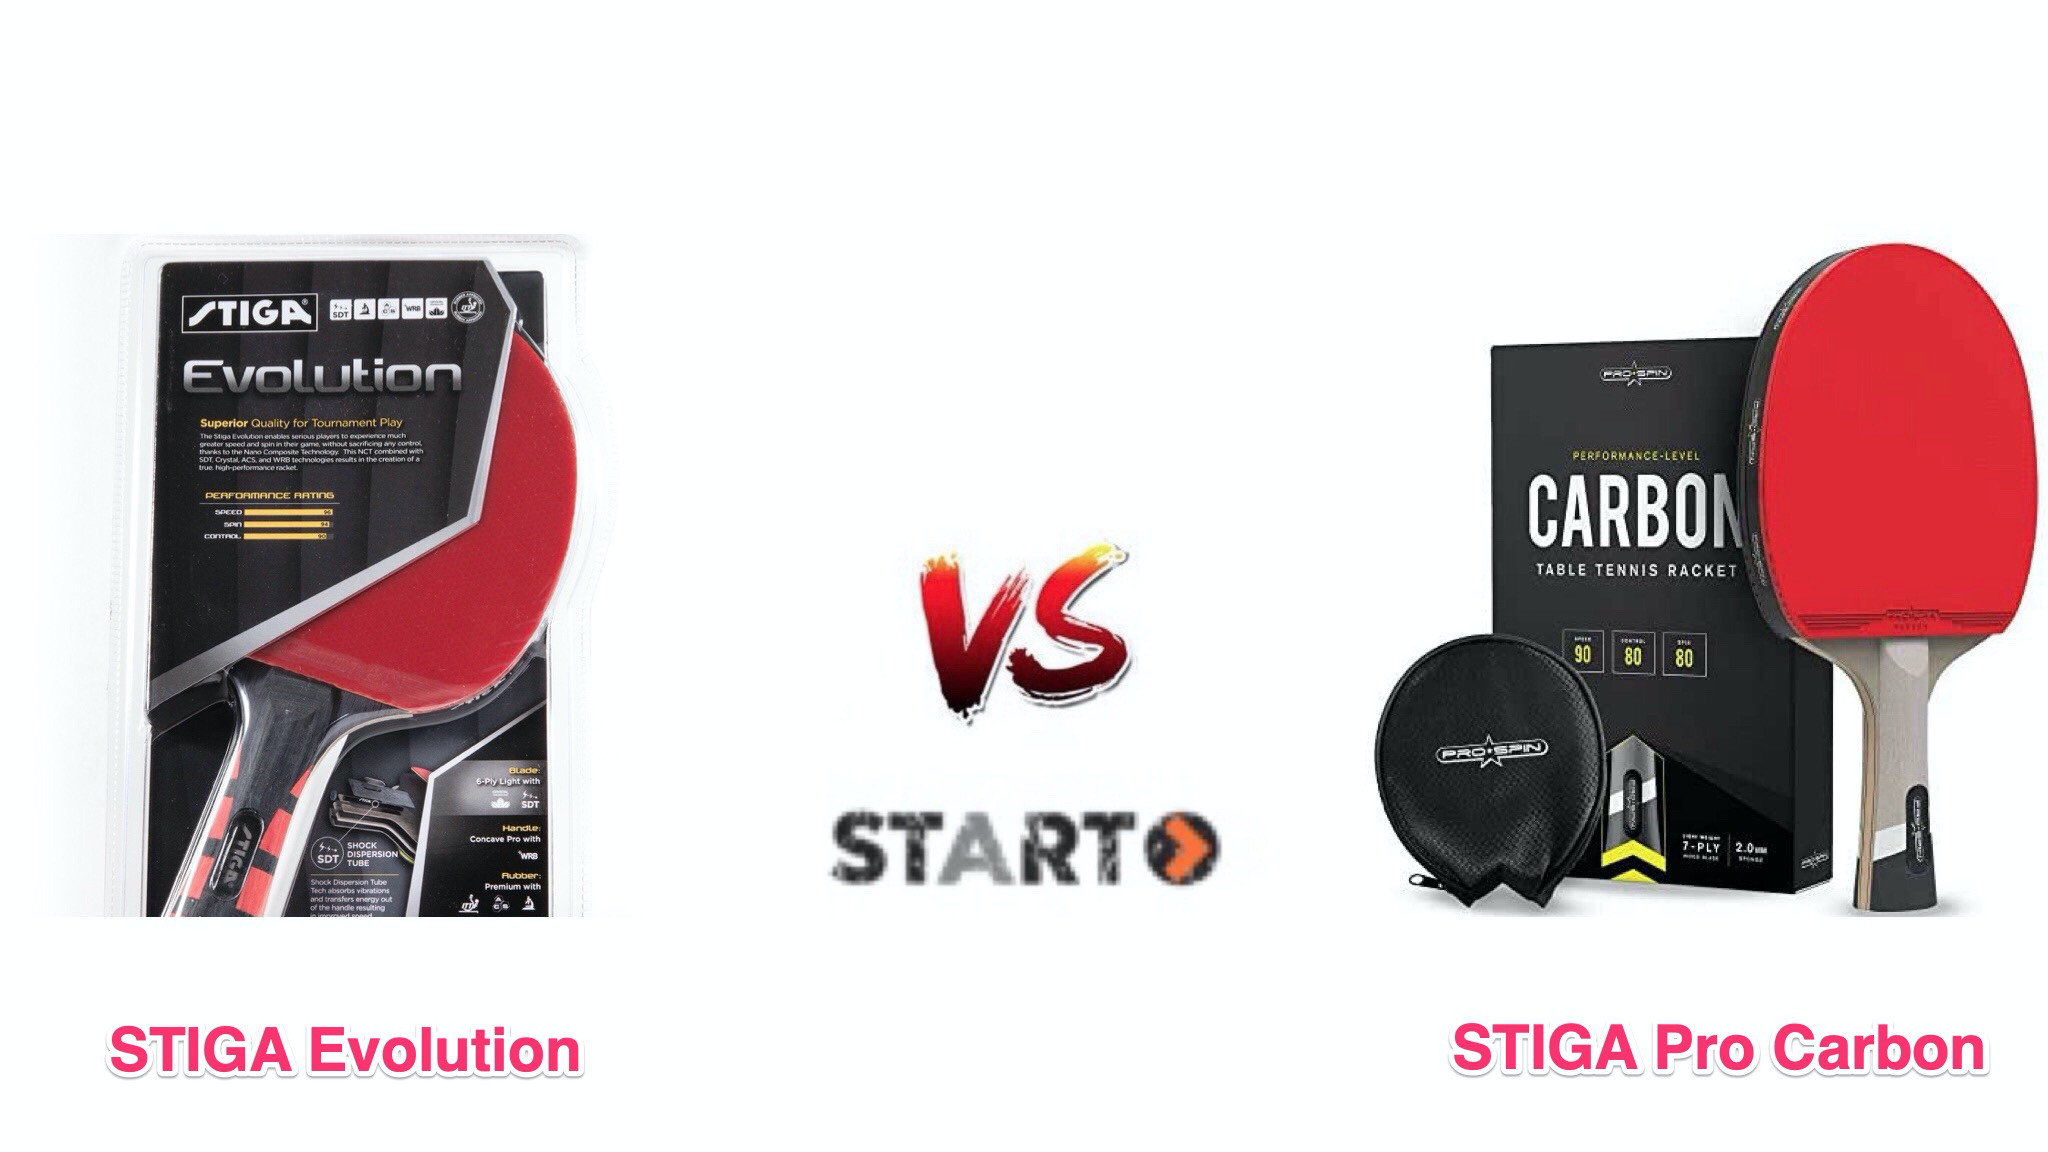 Stiga Evolution vs. Stiga Pro Carbon